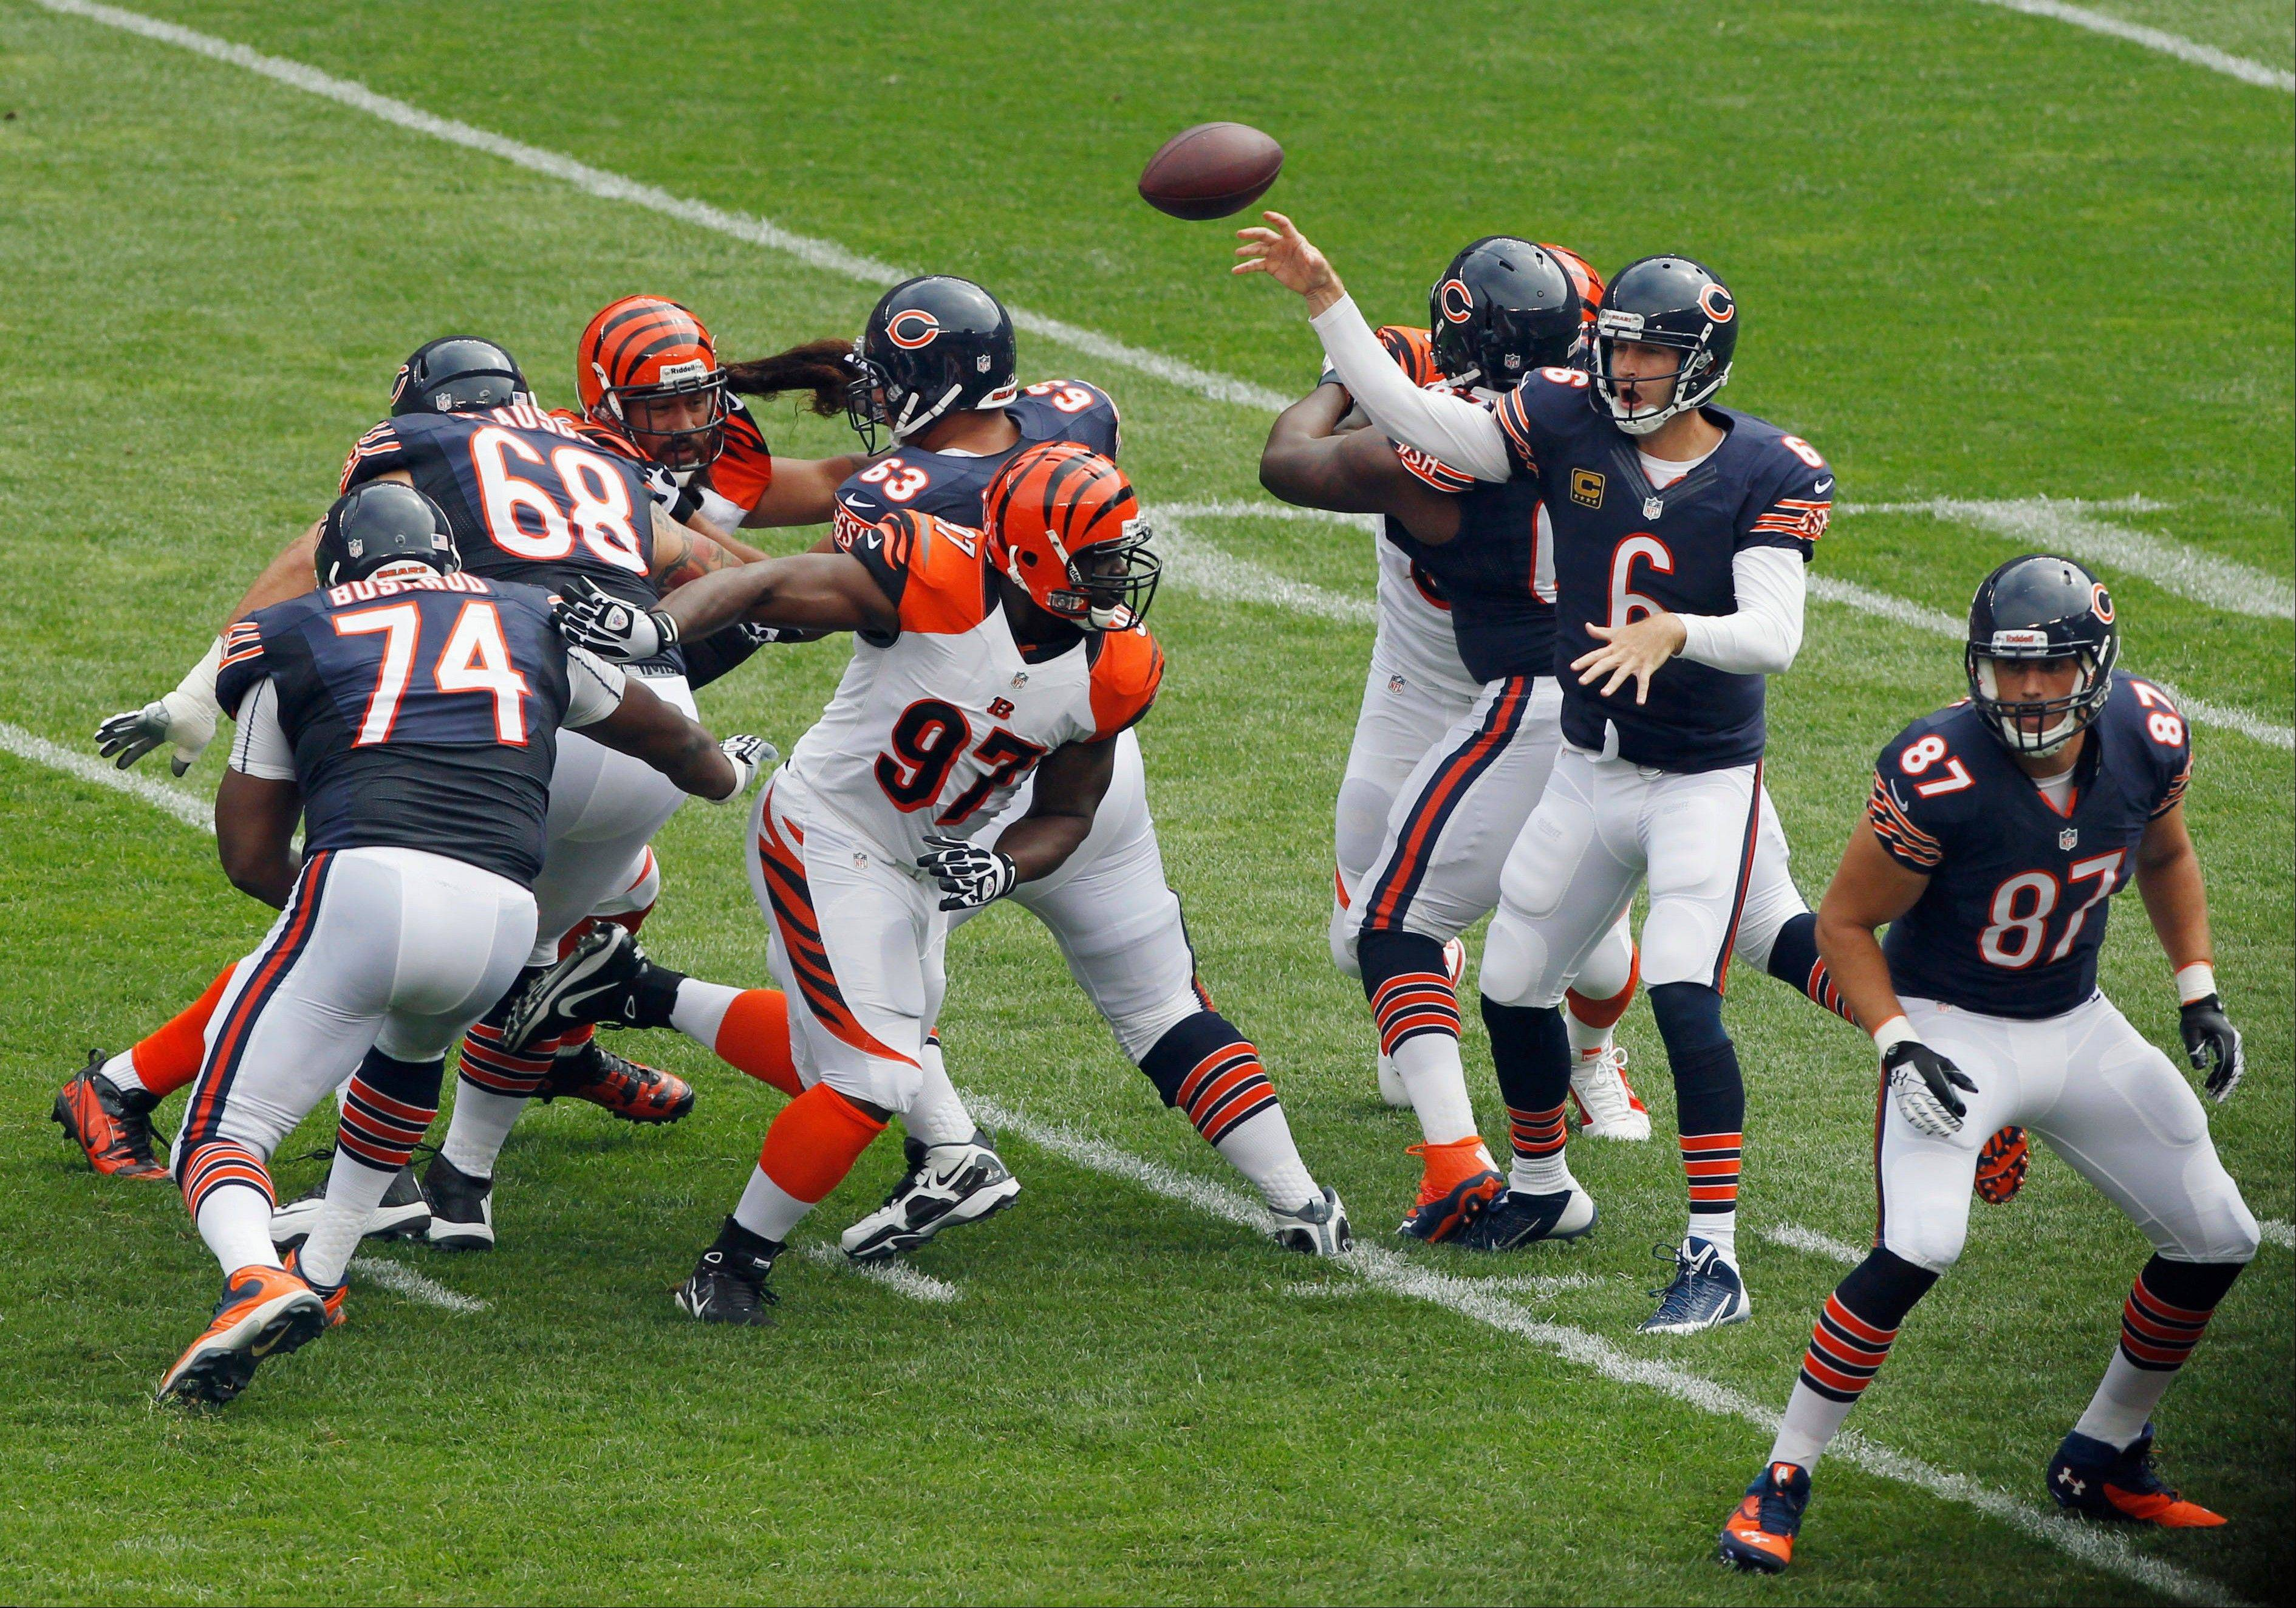 Chicago Bears quarterback Jay Cutler (6) throws a pass under pressure from Cincinnati Bengals defensive tackle Geno Atkins (97) during the first half of an NFL football game, Sunday, Sept. 8, 2013, in Chicago.